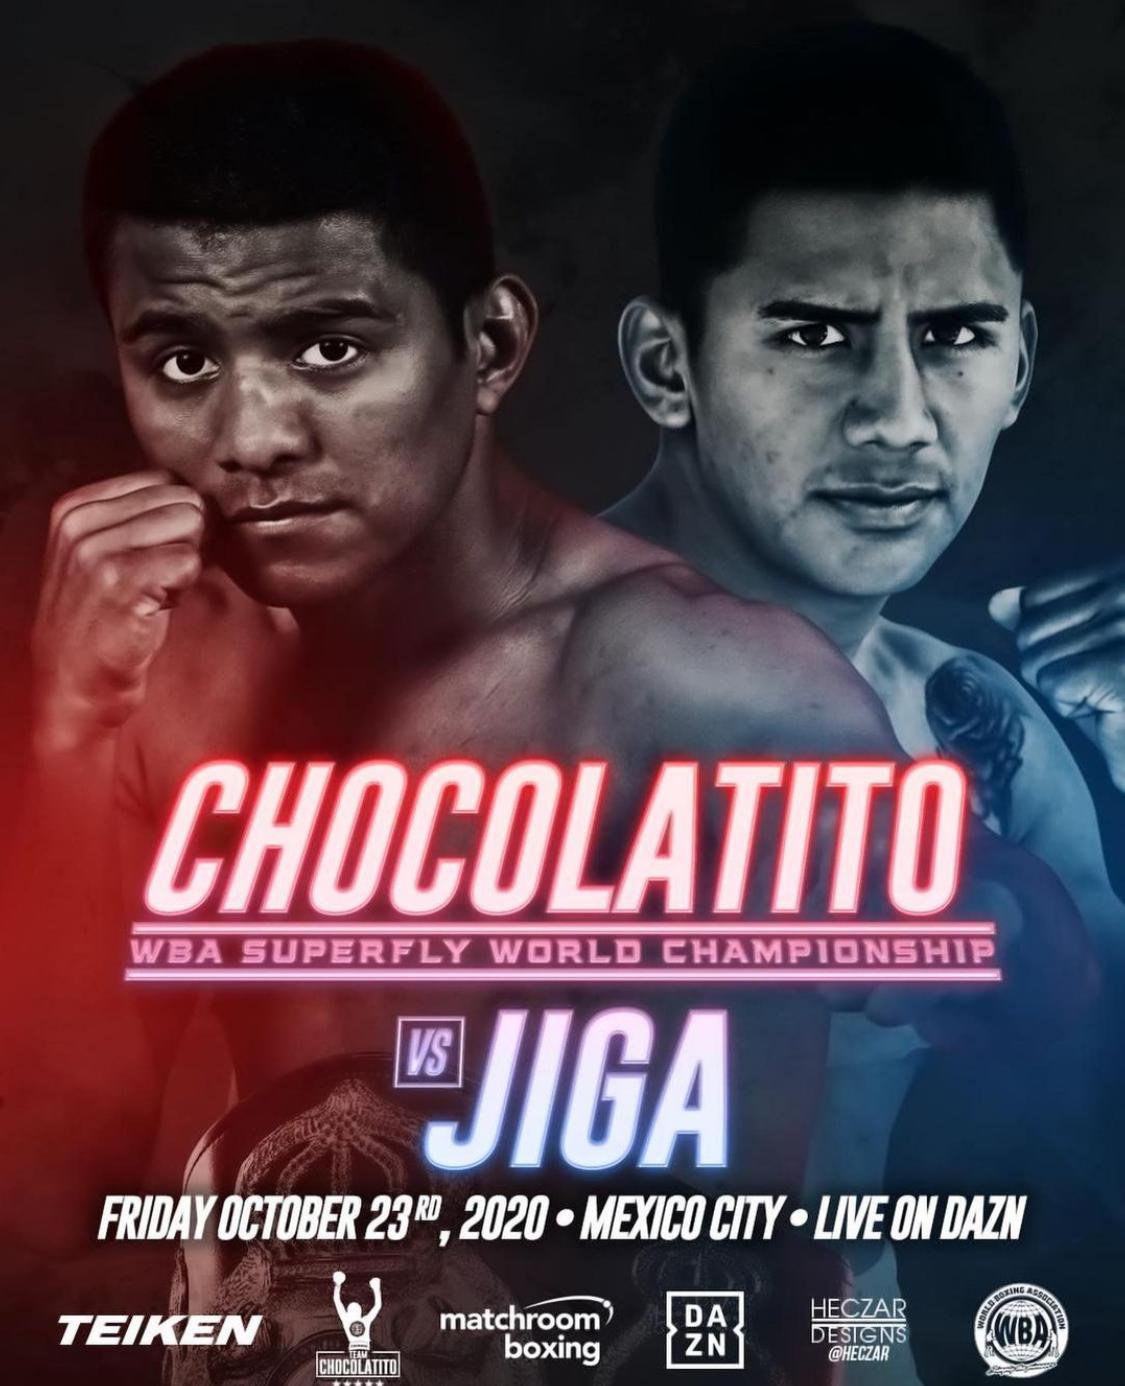 """""""Chocolatito"""" and """"Jiga"""" will fight for the WBA belt this Friday in Mexico City"""